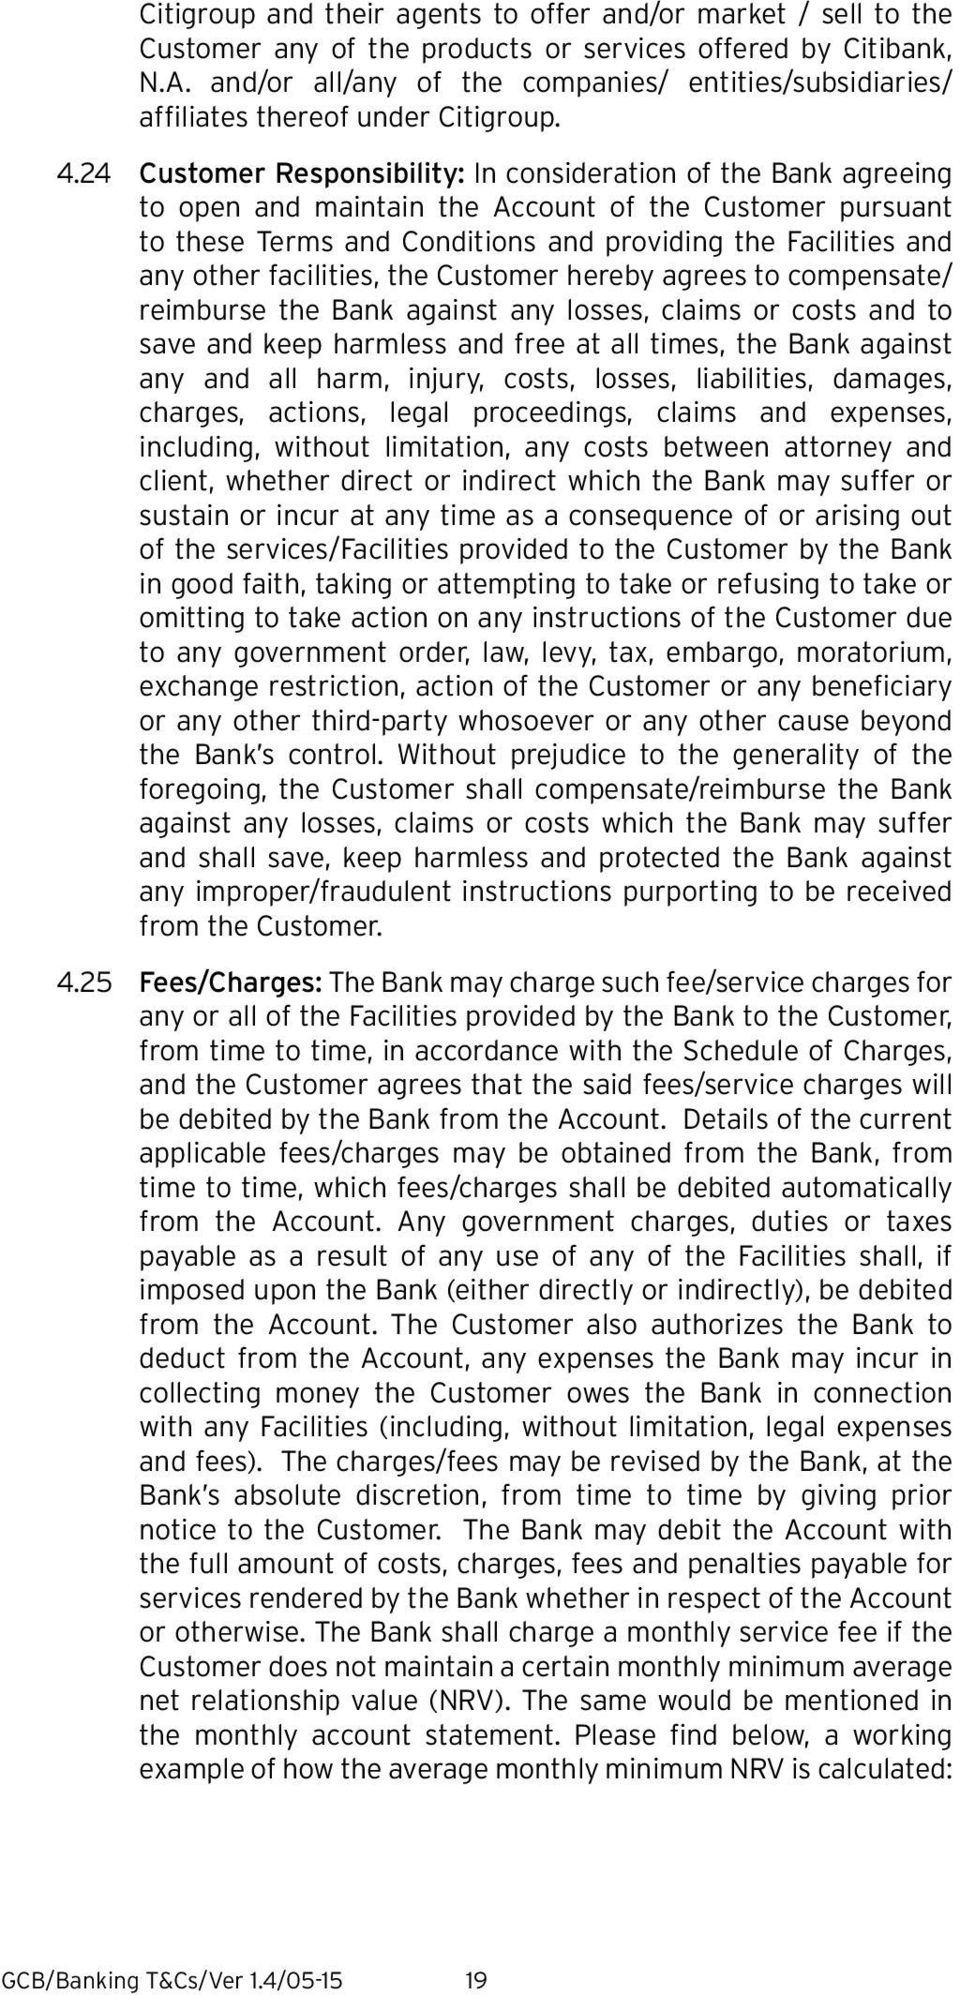 24 Customer Responsibility: In consideration of the Bank agreeing to open and maintain the Account of the Customer pursuant to these Terms and Conditions and providing the Facilities and any other